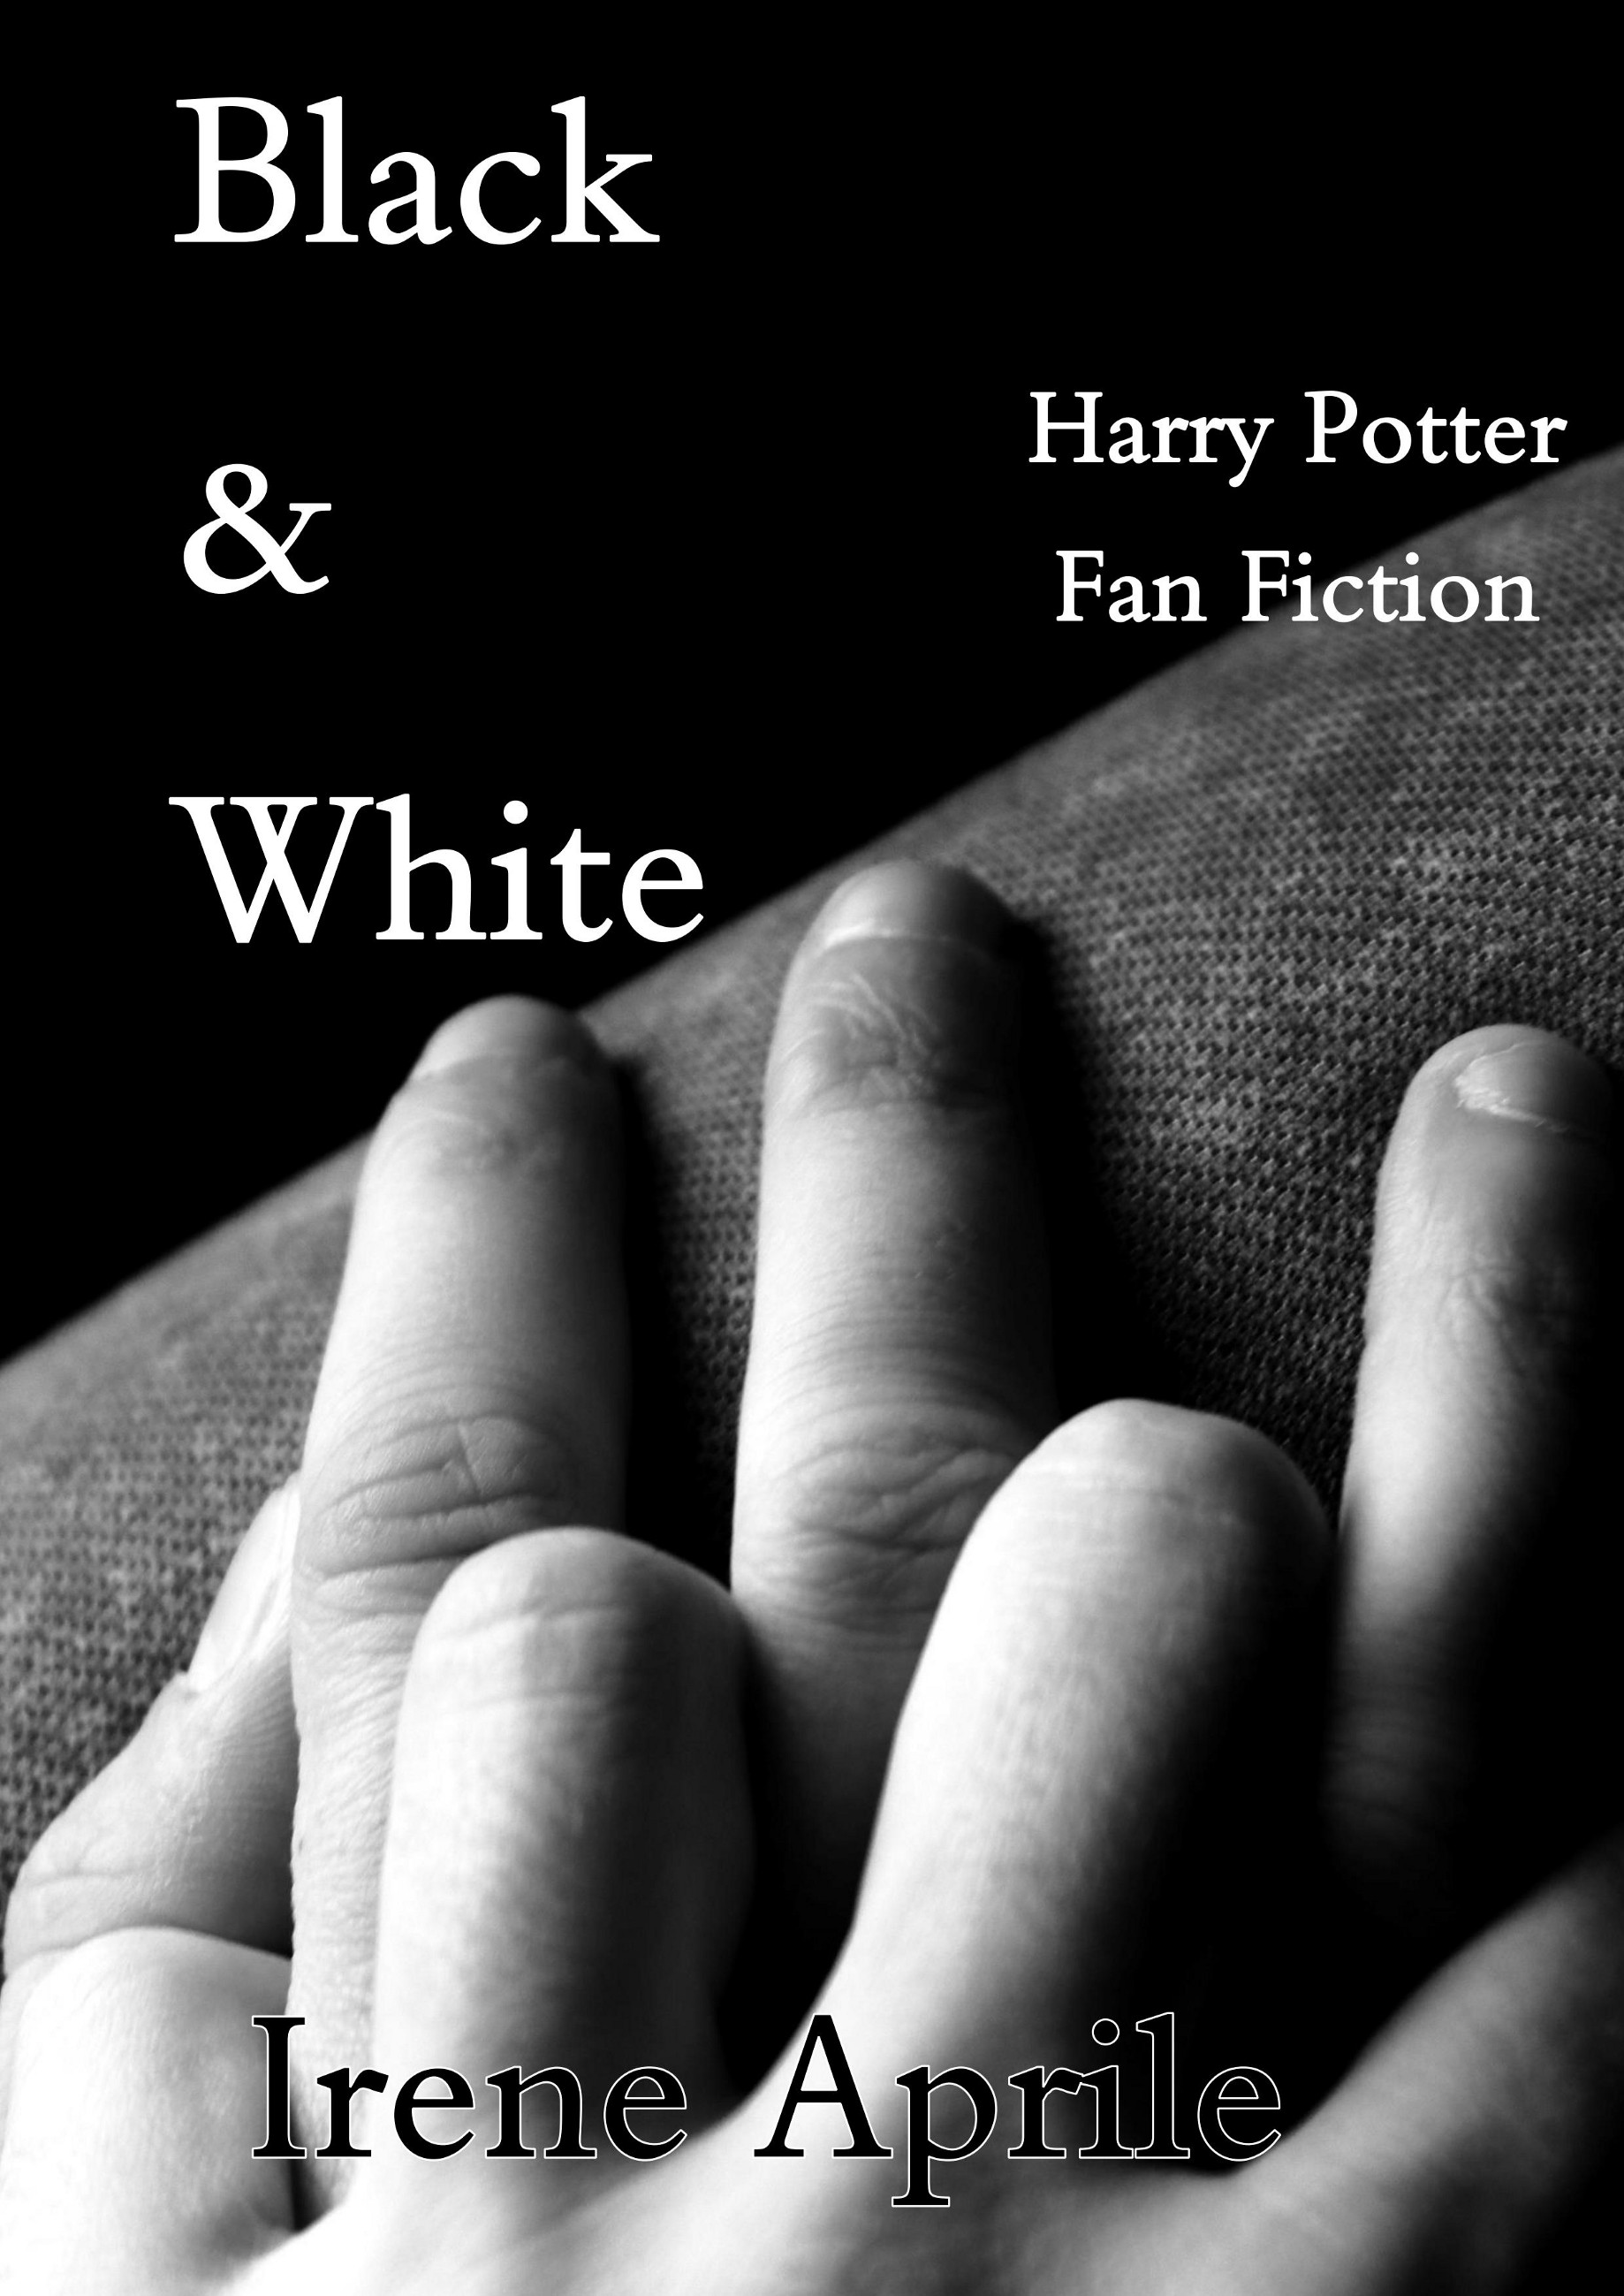 Black & White — A Harry Potter Fanfiction - Irene Aprile